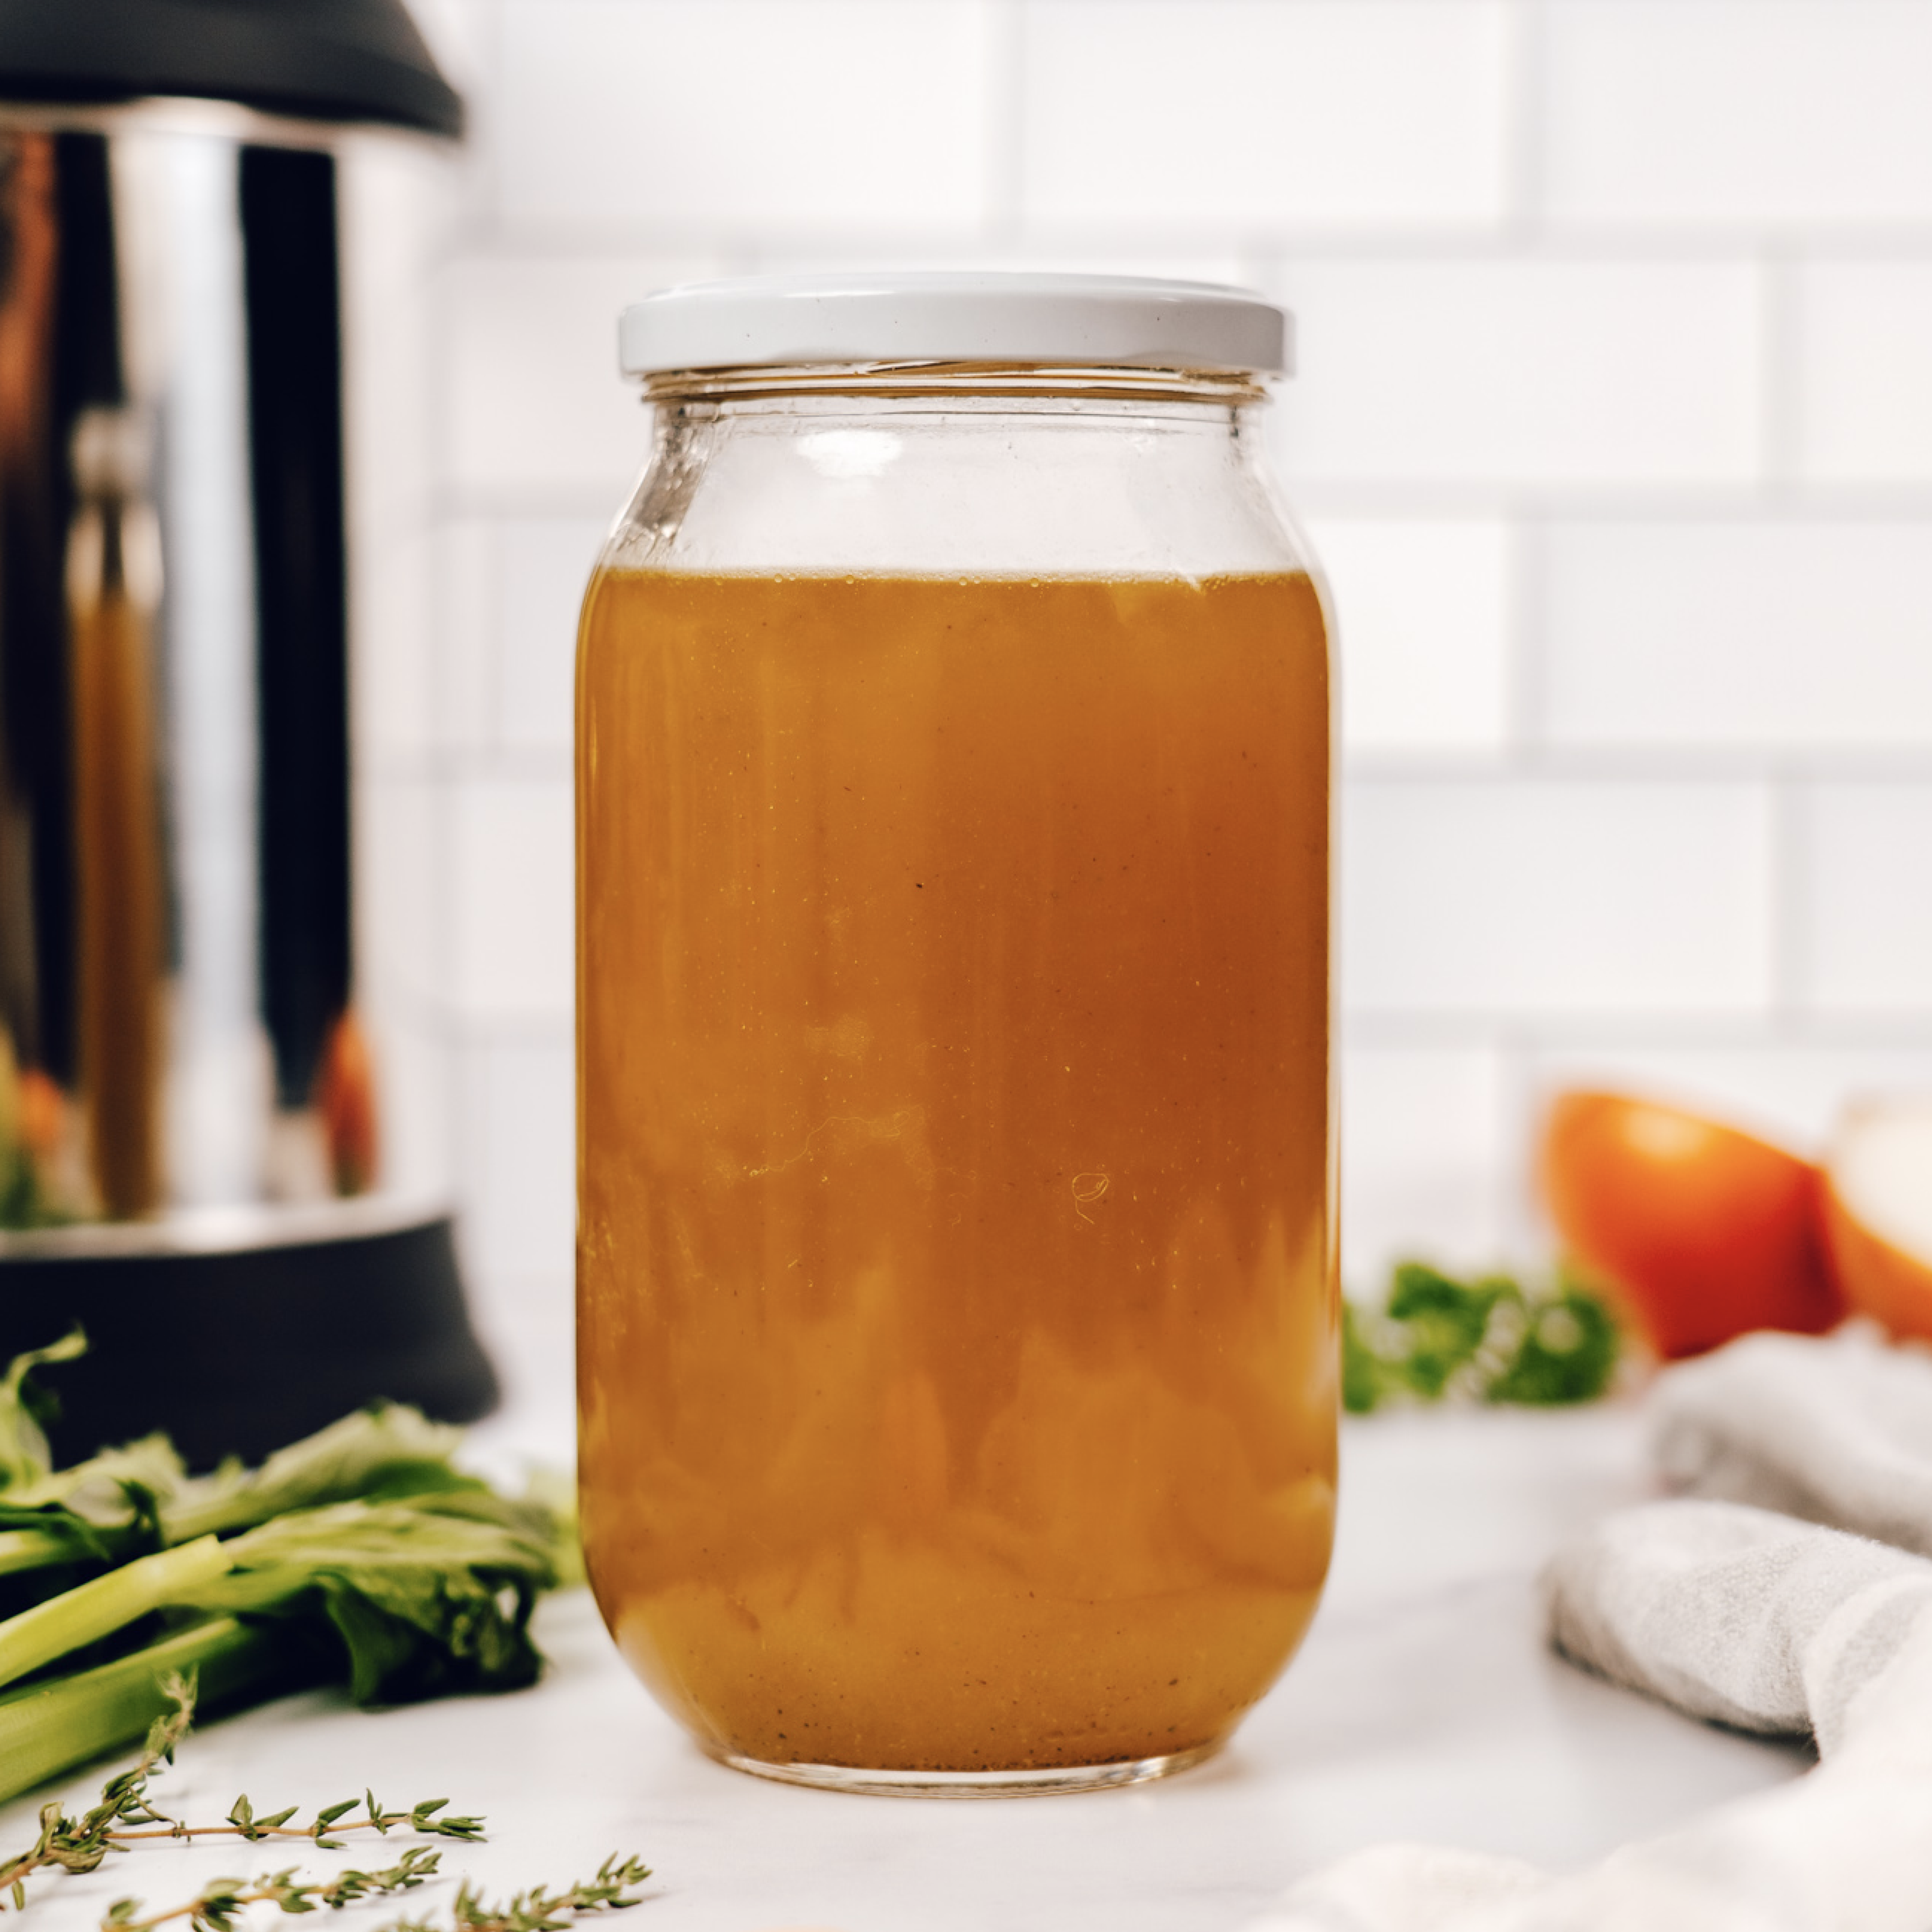 glass container of vegan vegetable broth